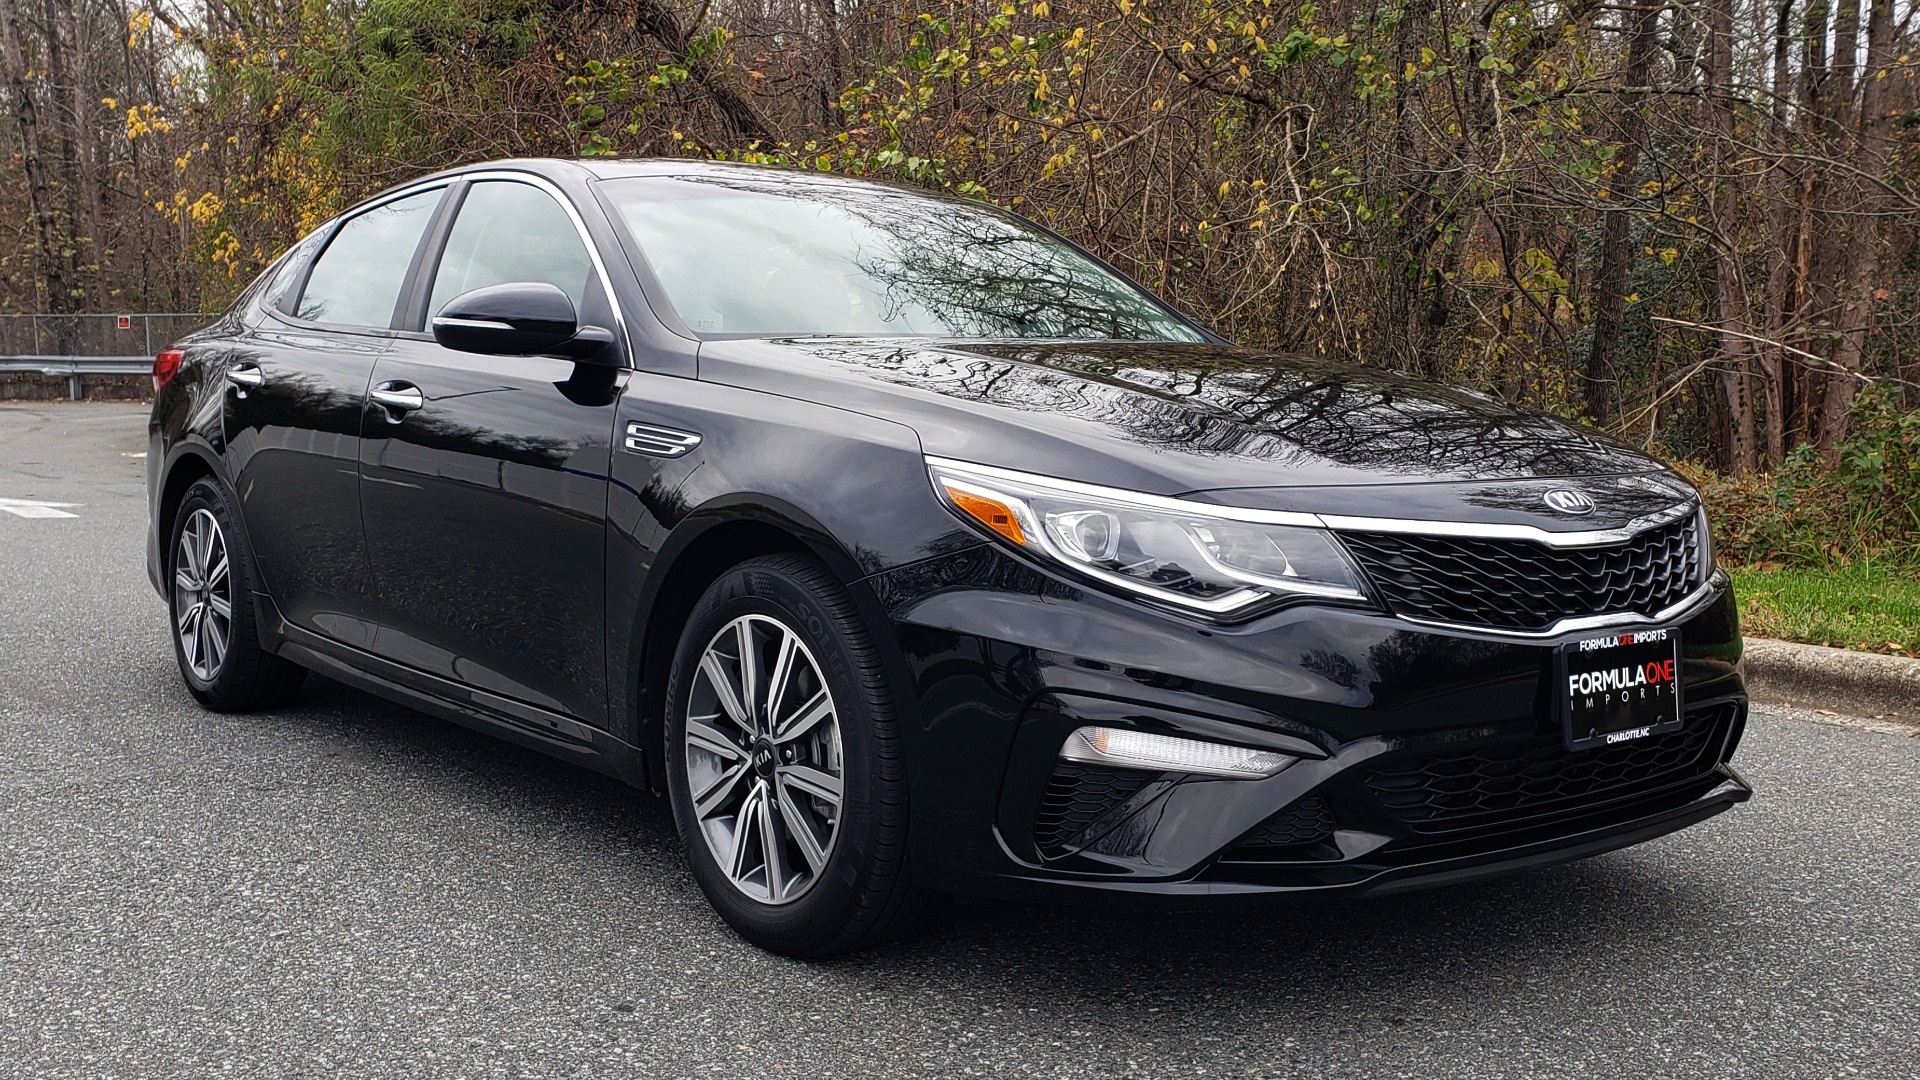 Used 2019 Kia OPTIMA LX AUTO / 2.4L 4-CYL / 6-SPD AUTO / REARVIEW / LOW MILES for sale $17,995 at Formula Imports in Charlotte NC 28227 4